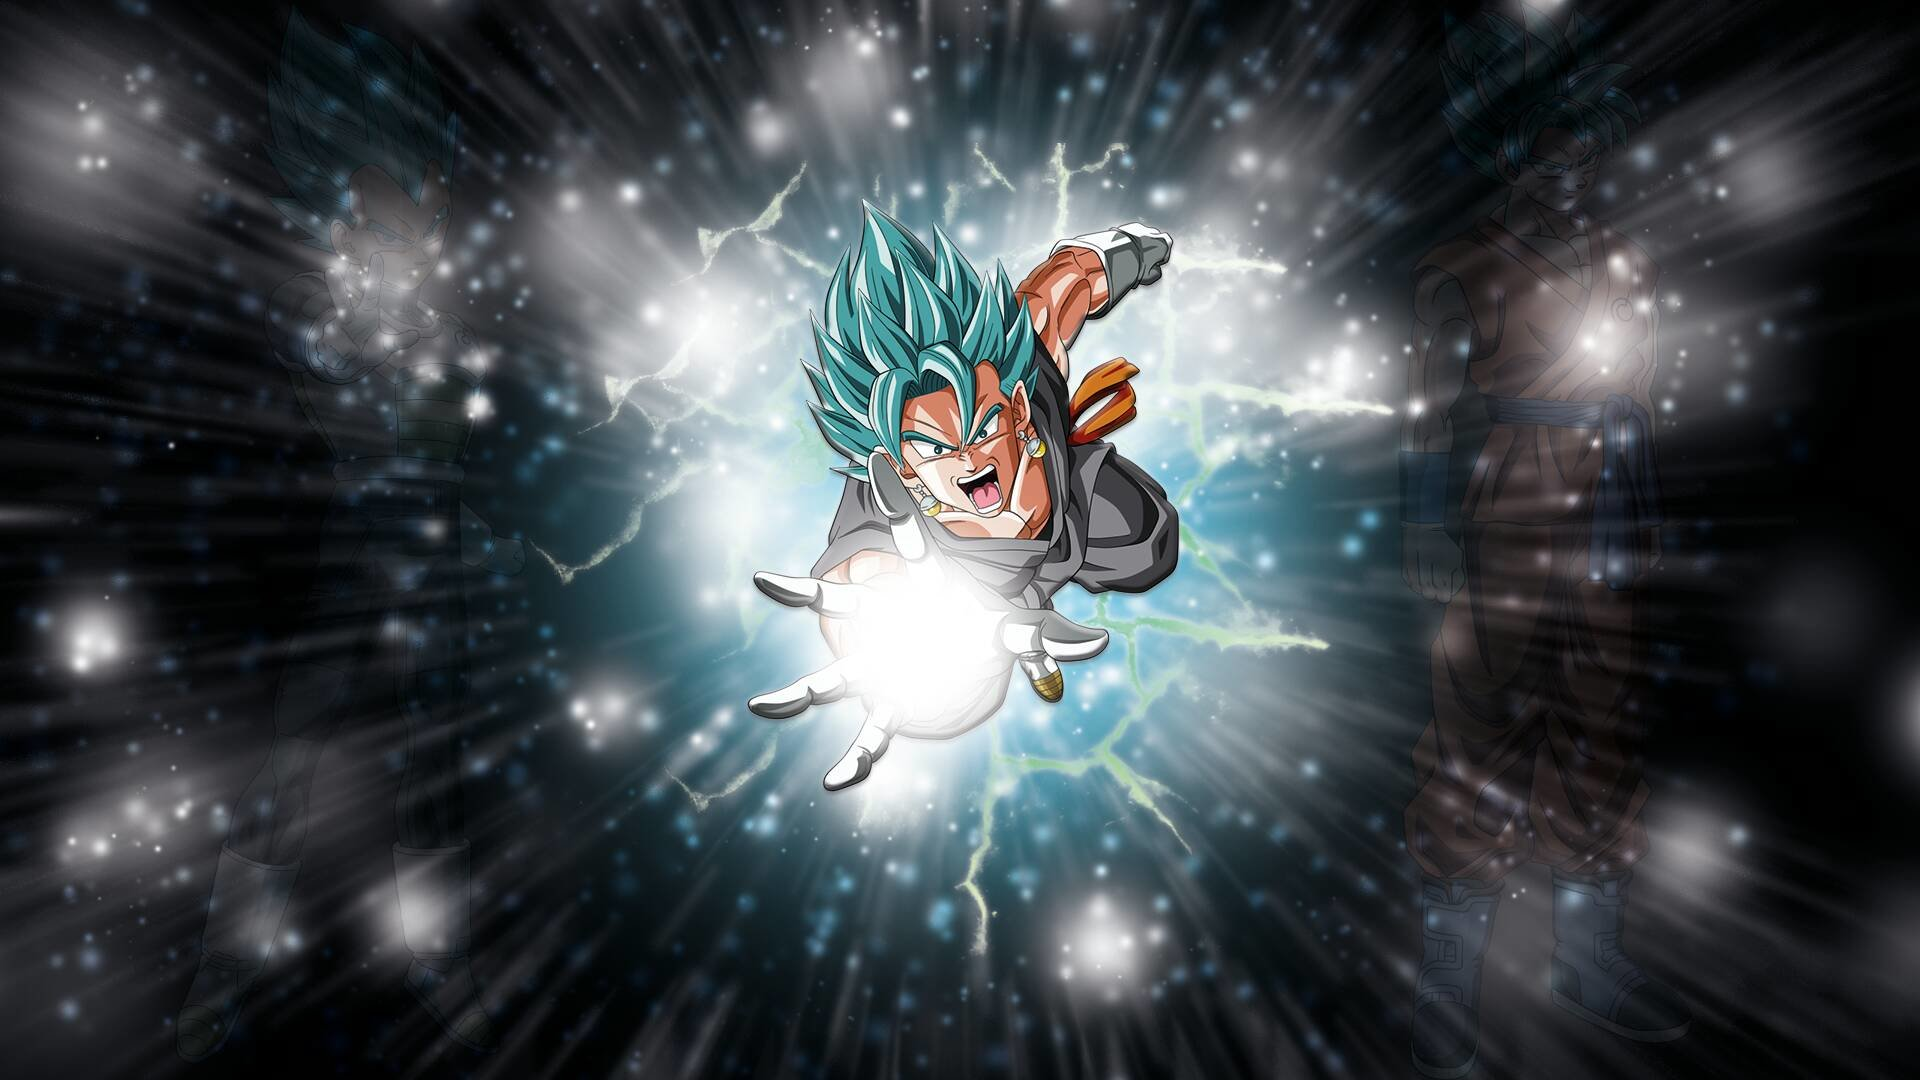 Awesome Dragon Ball Super Free Wallpaper ID242650 For Full Hd 1080p PC